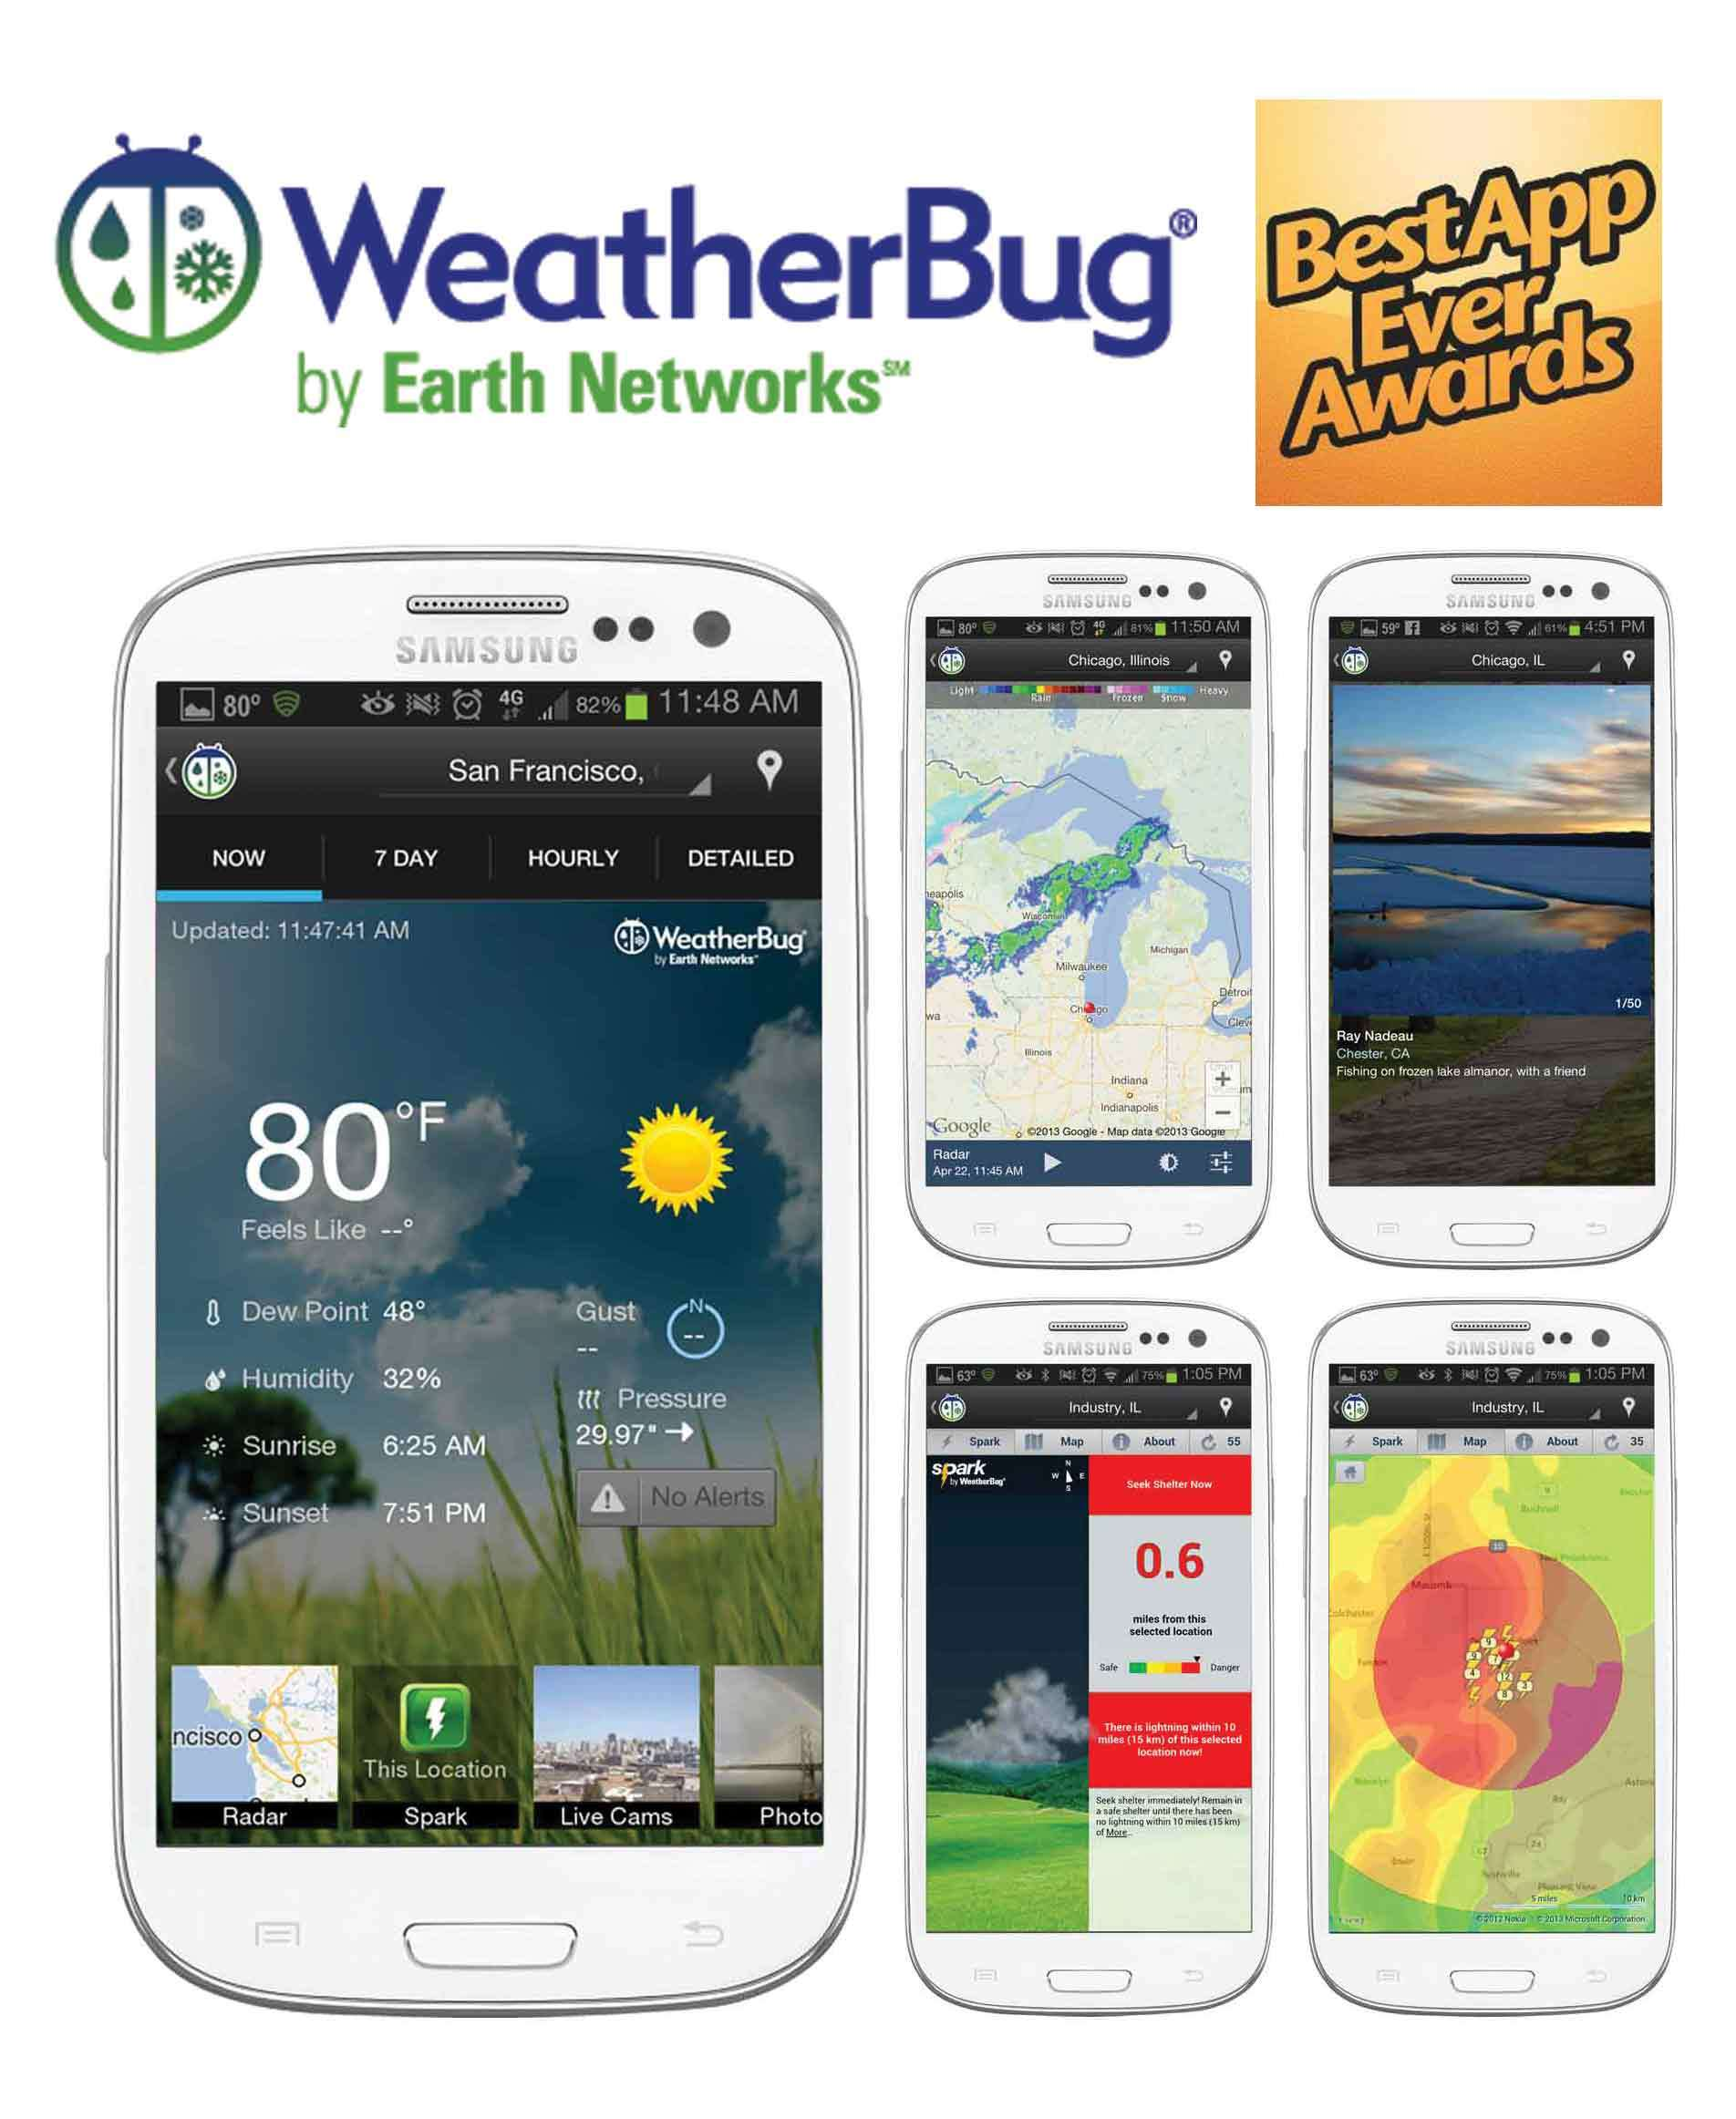 Phone Best Weather App For Android Phones weatherbug for android named best weather app ever by popular vote business wire